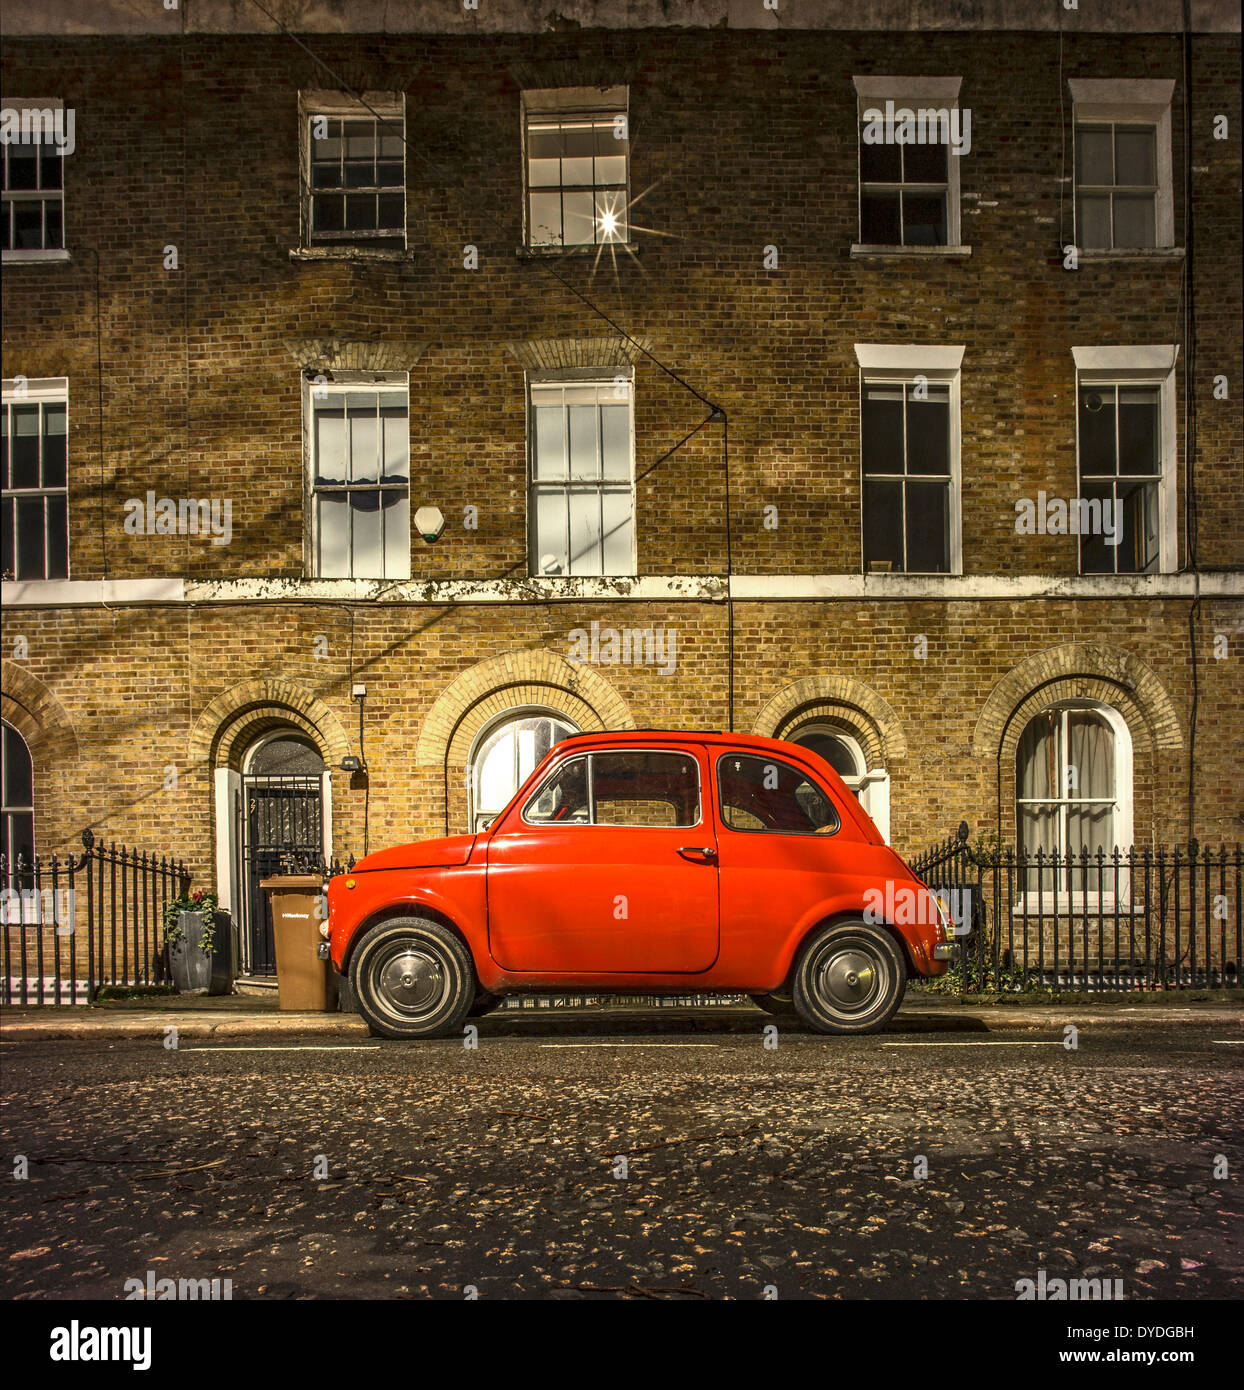 An original Fiat 500 parked on a London street. - Stock Image